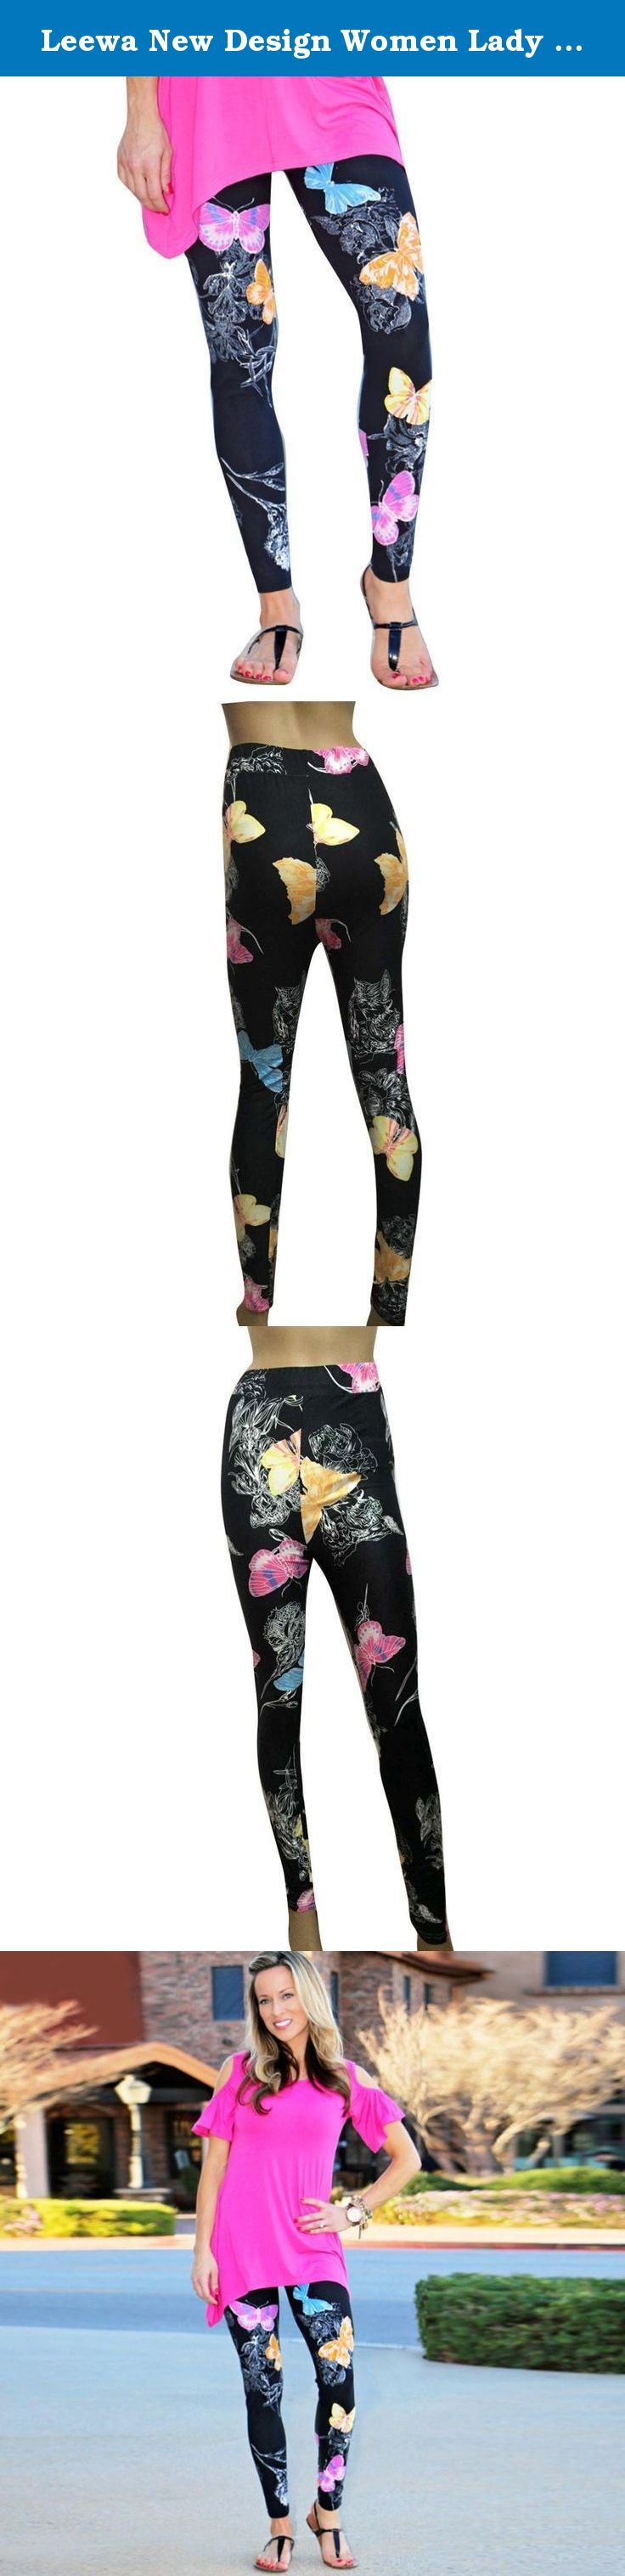 """Leewa New Design Women Lady Skinny Butterfly Printed Stretchy Pants Leggings (M, Gray) (XL, Black). Specifications: Gender:Women Material:Cotton Clothing Length:Regular Pattern Type:Print Sleeve Style:Regular Style:Fashion Package include:1PC Leggings Note: Factory Guarantee the Pant style is the same but some Pant Pattern not at the same place, factory make them random.Hope you can understand. Size:S -----Waist:62-76cm/24.4-29.9"""" -----Hip:73-88cm/28.7-34.6"""" -----Length:100cm/39.4"""" Size:M..."""